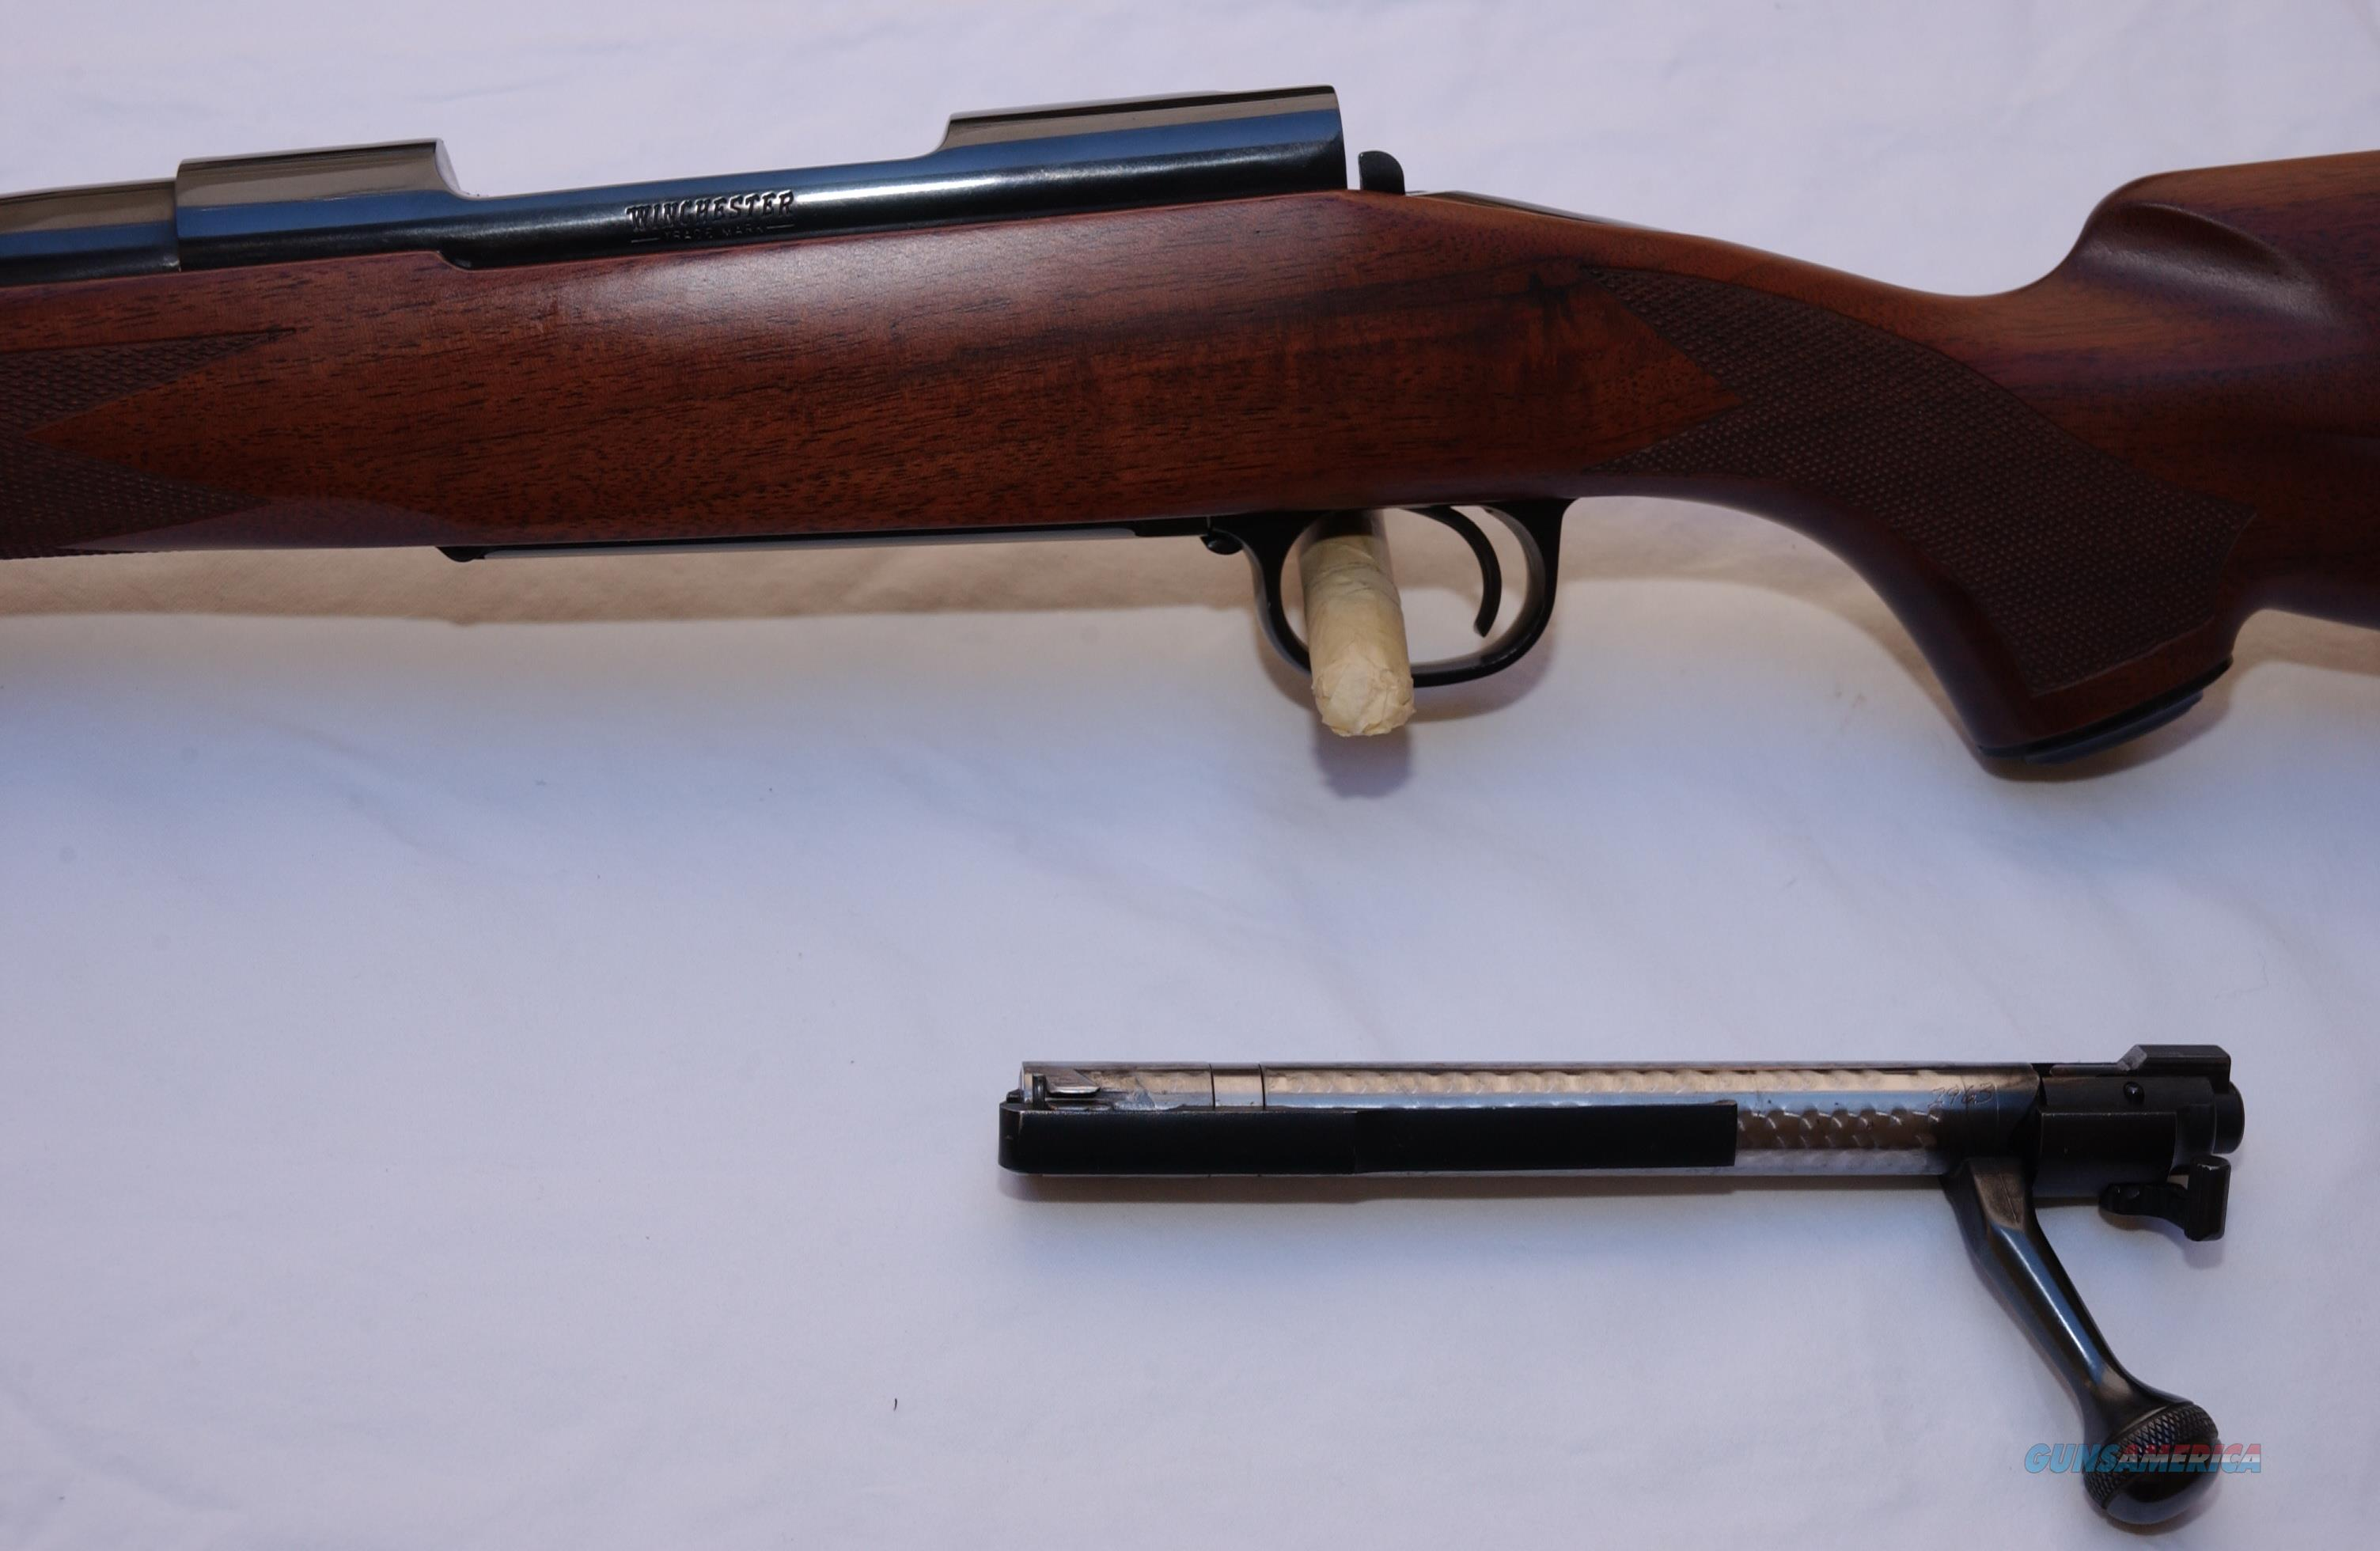 Winchester M70 post-64 in 30-06 with controlled round feed  Guns > Rifles > Winchester Rifles - Modern Bolt/Auto/Single > Model 70 > Post-64